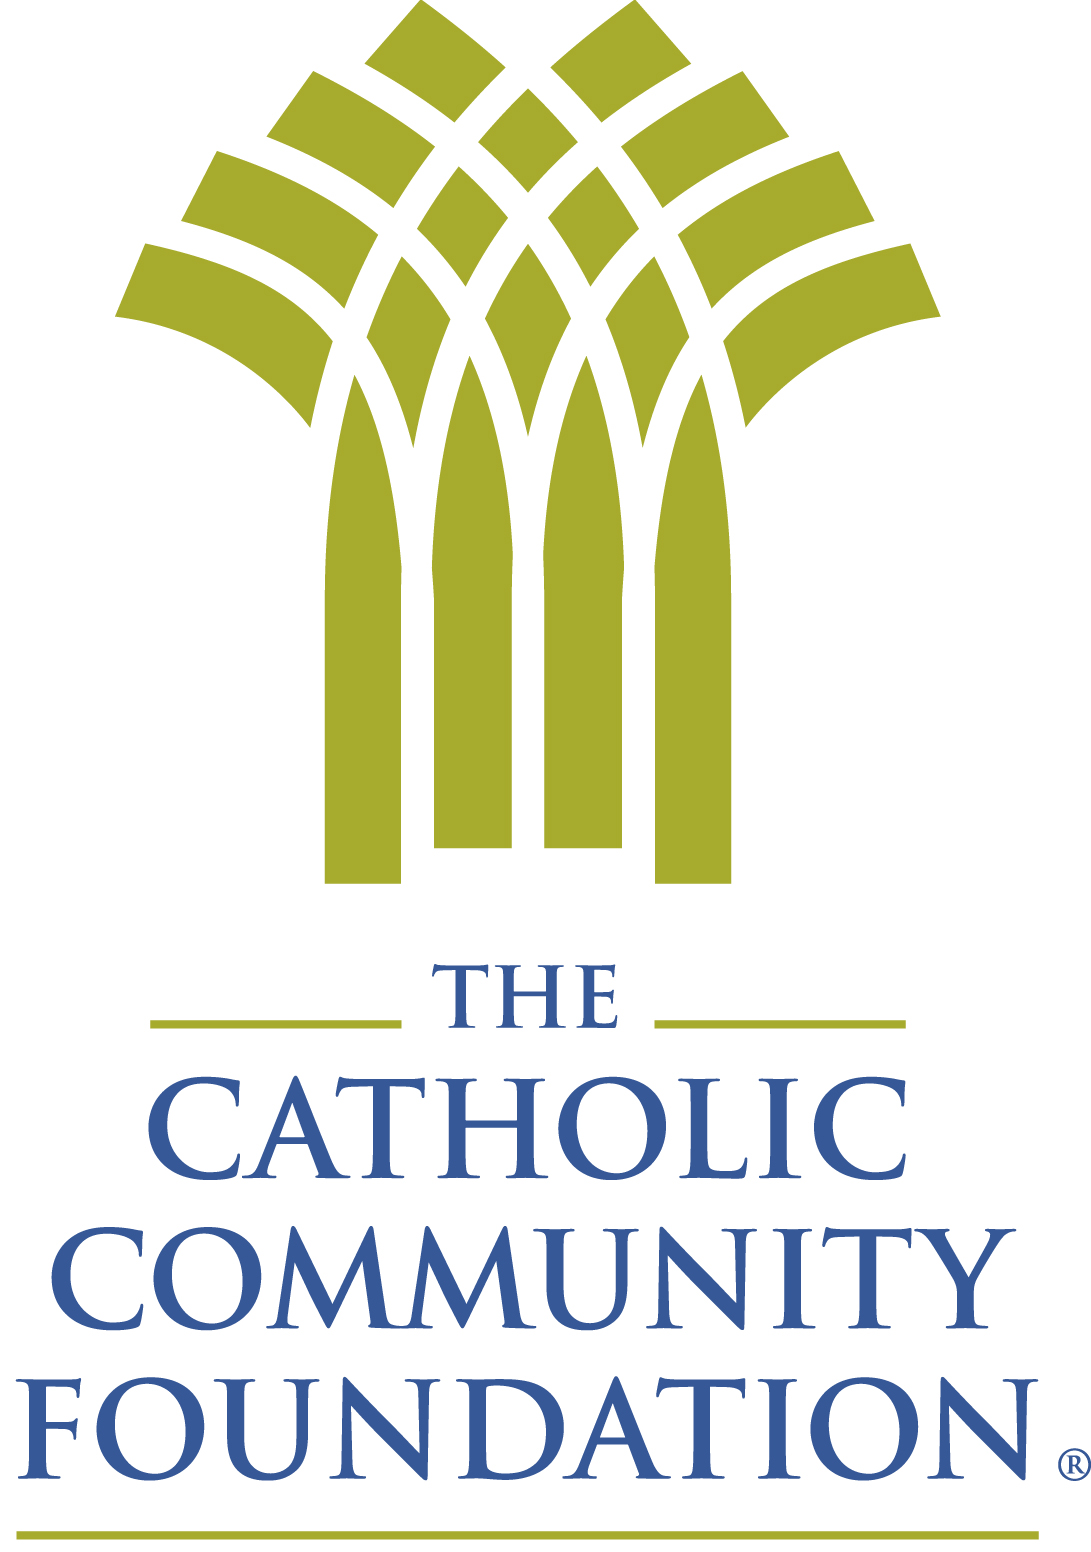 CatholicCommunityFoundation.jpg